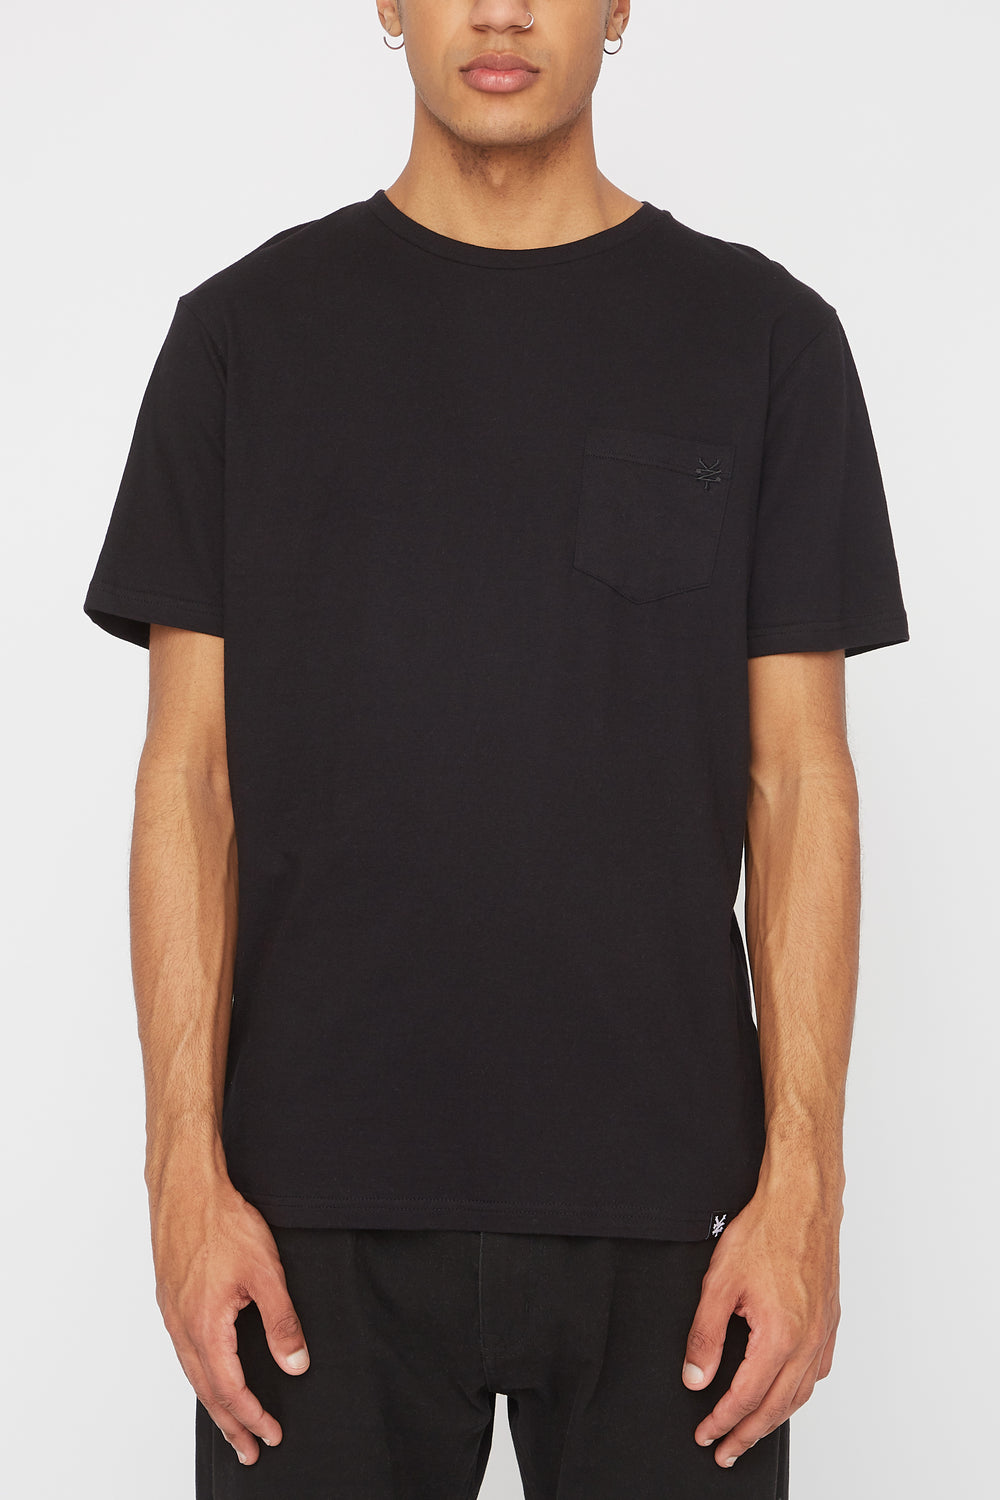 Zoo York Mens Embroidered Logo Pocket T-Shirt Black